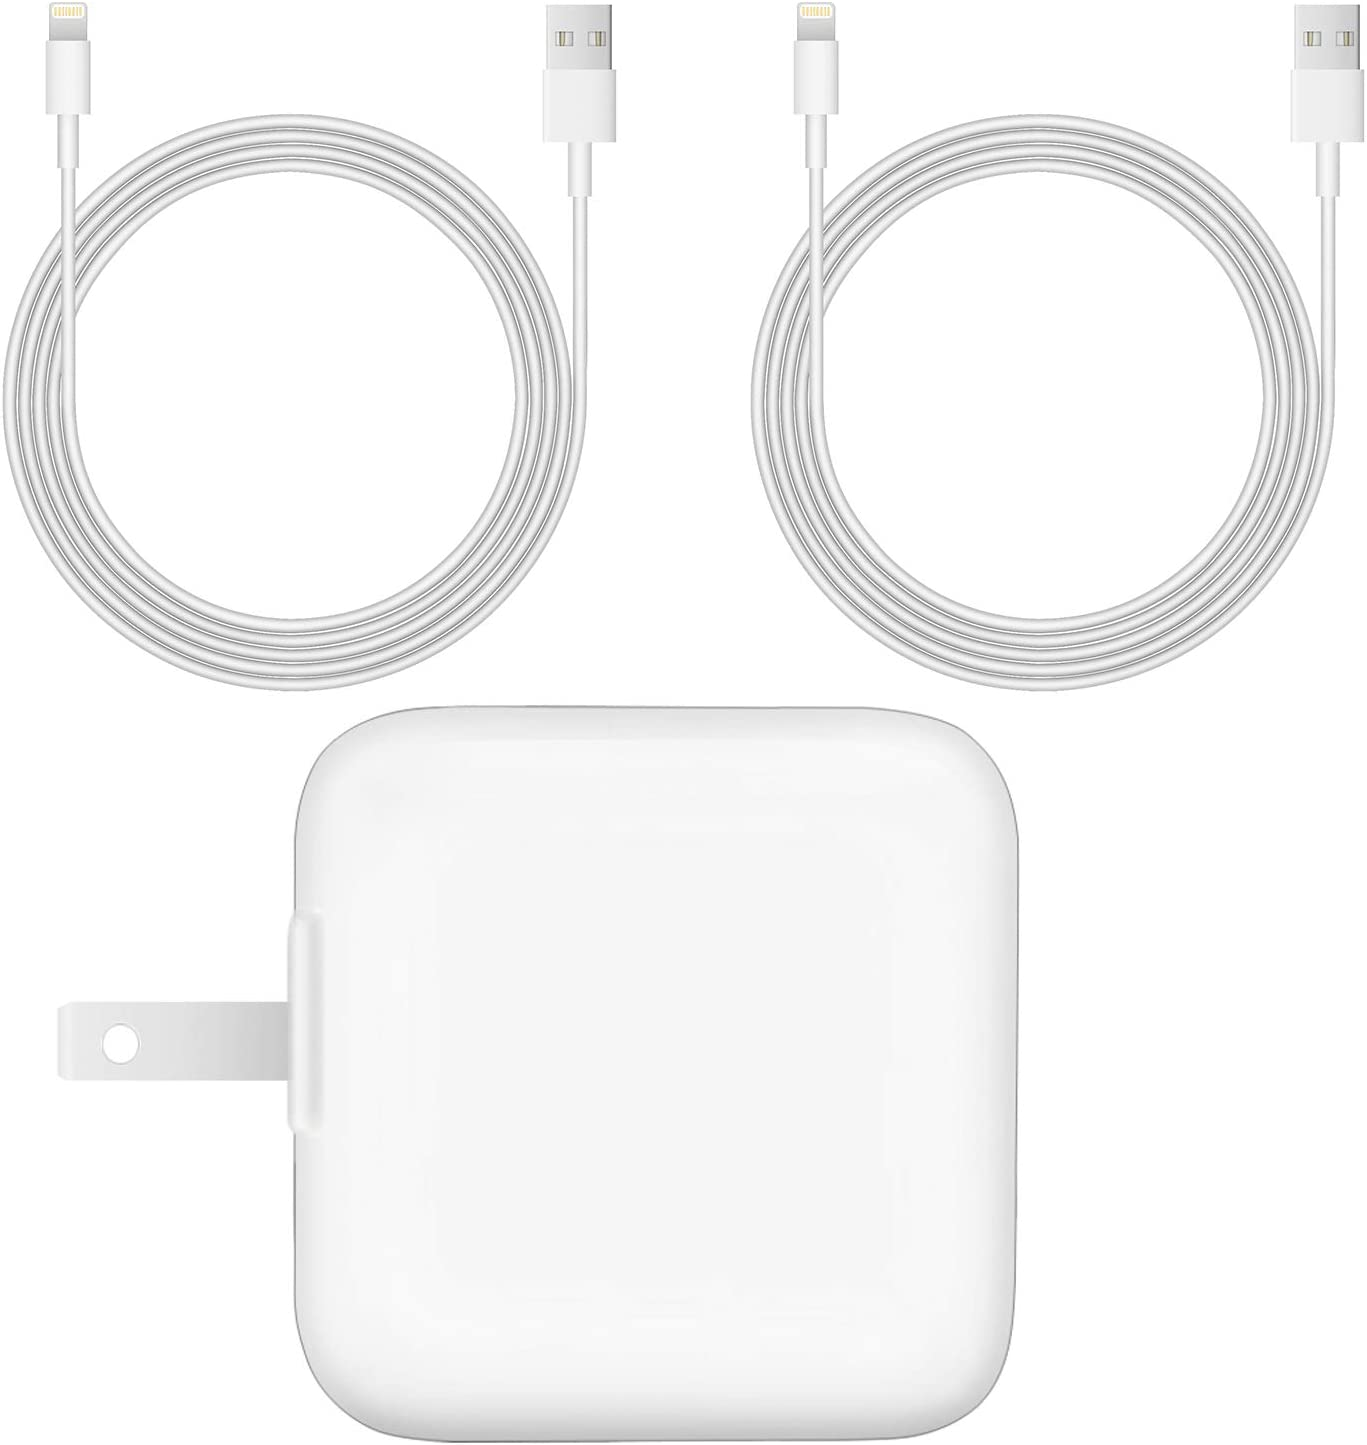 [MFi Certified] 12W USB Wall Charger for iPad iPhone, 2.4A 12W iPad Charger with 2-Pack 6 Ft Lightning Charging Cable and Foldable Portable Travel Plug Compatible with iPad, iPhone